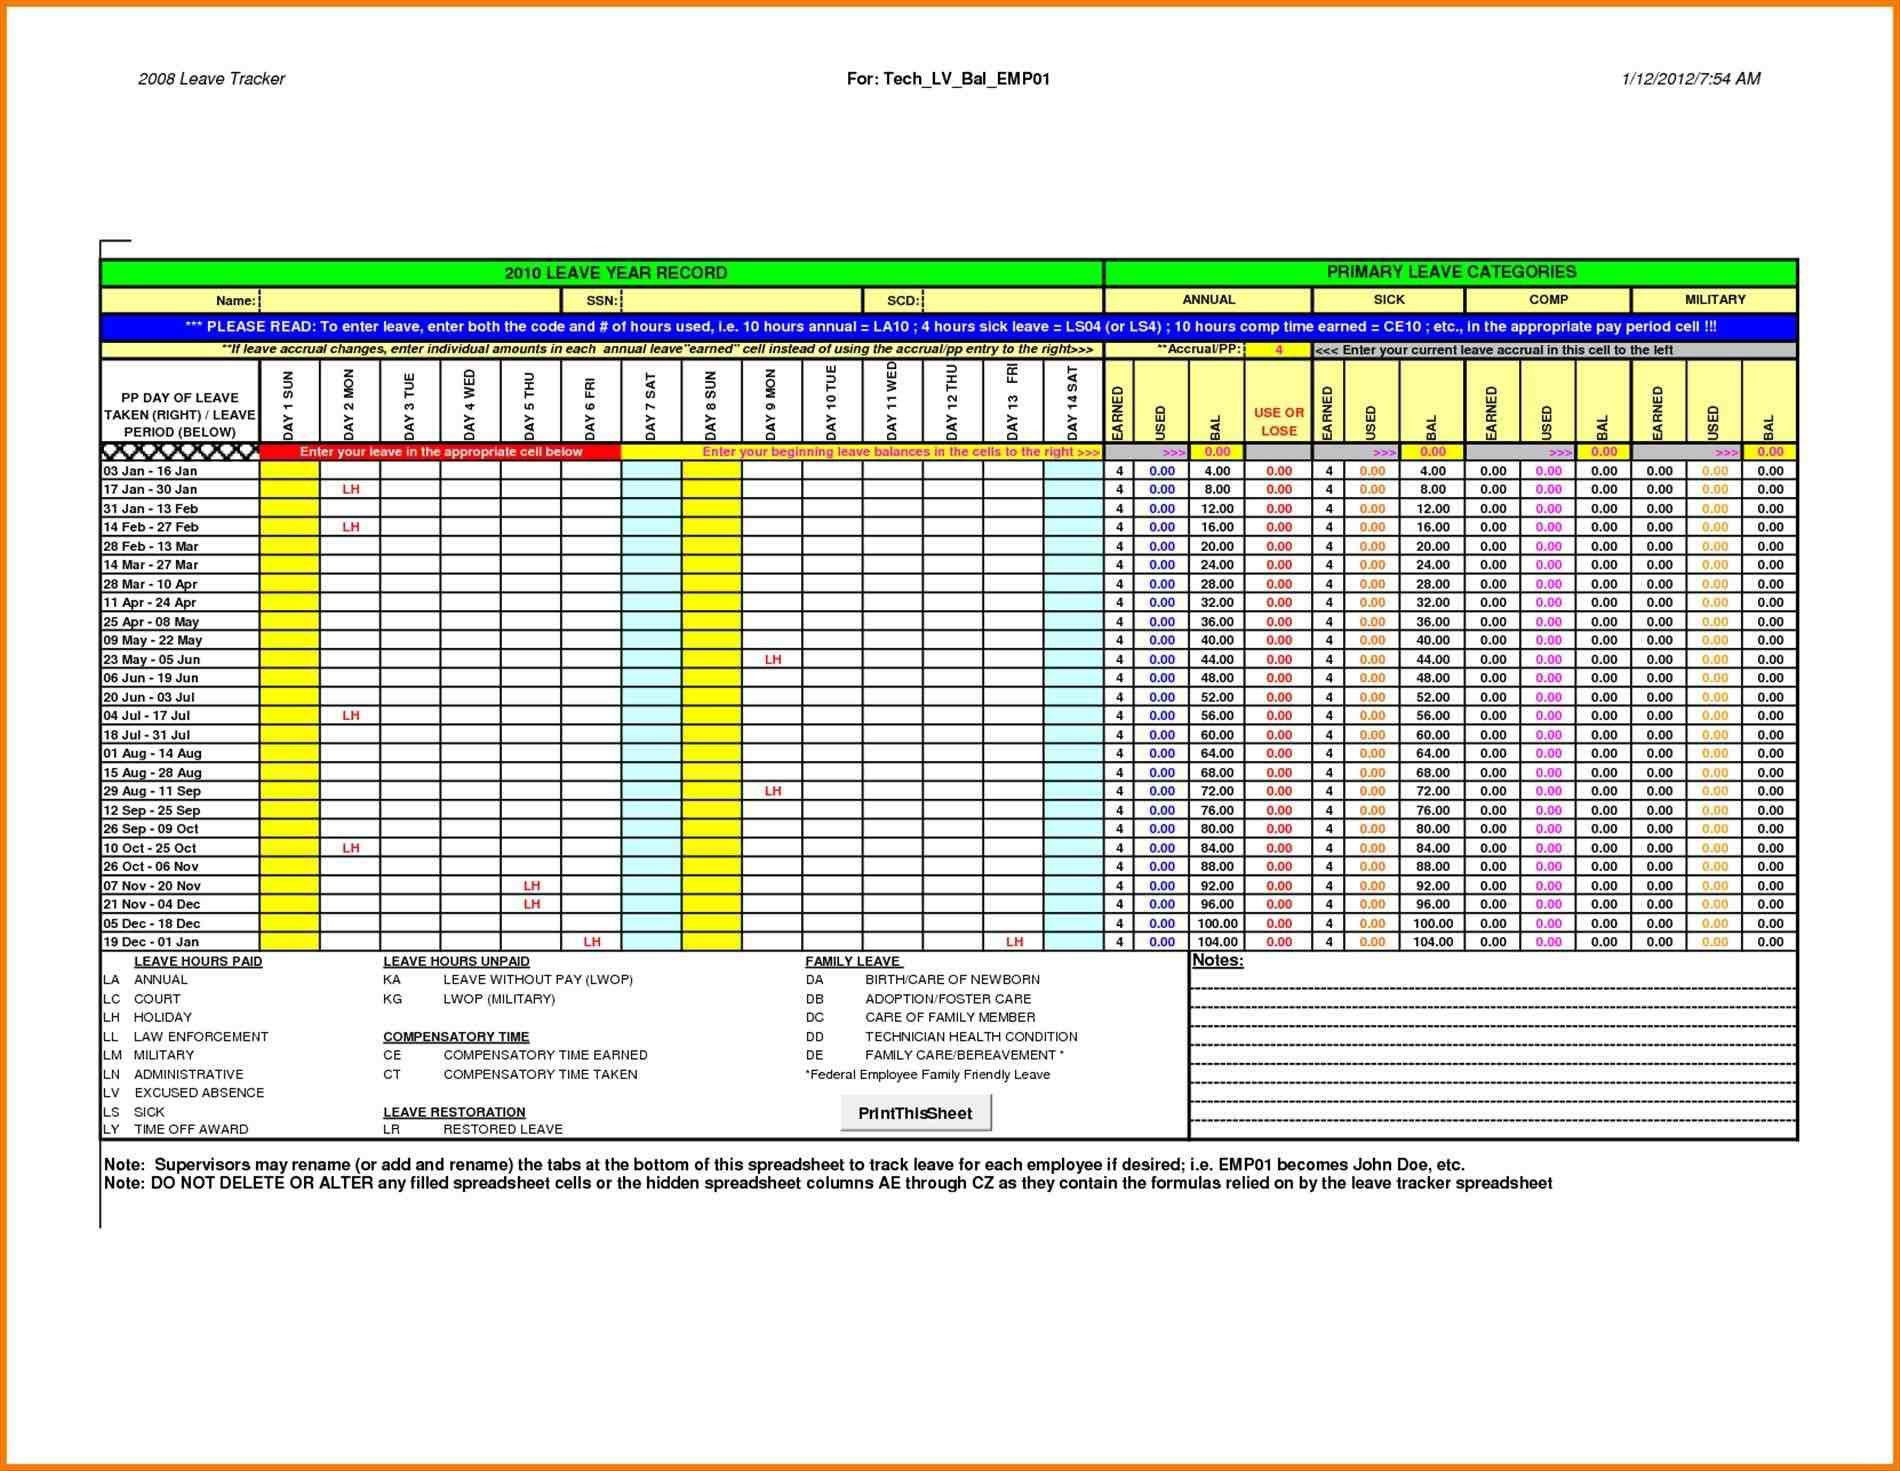 004 Incredible Employee Attendance Record Template Excel Sample  Free Download With TimeFull